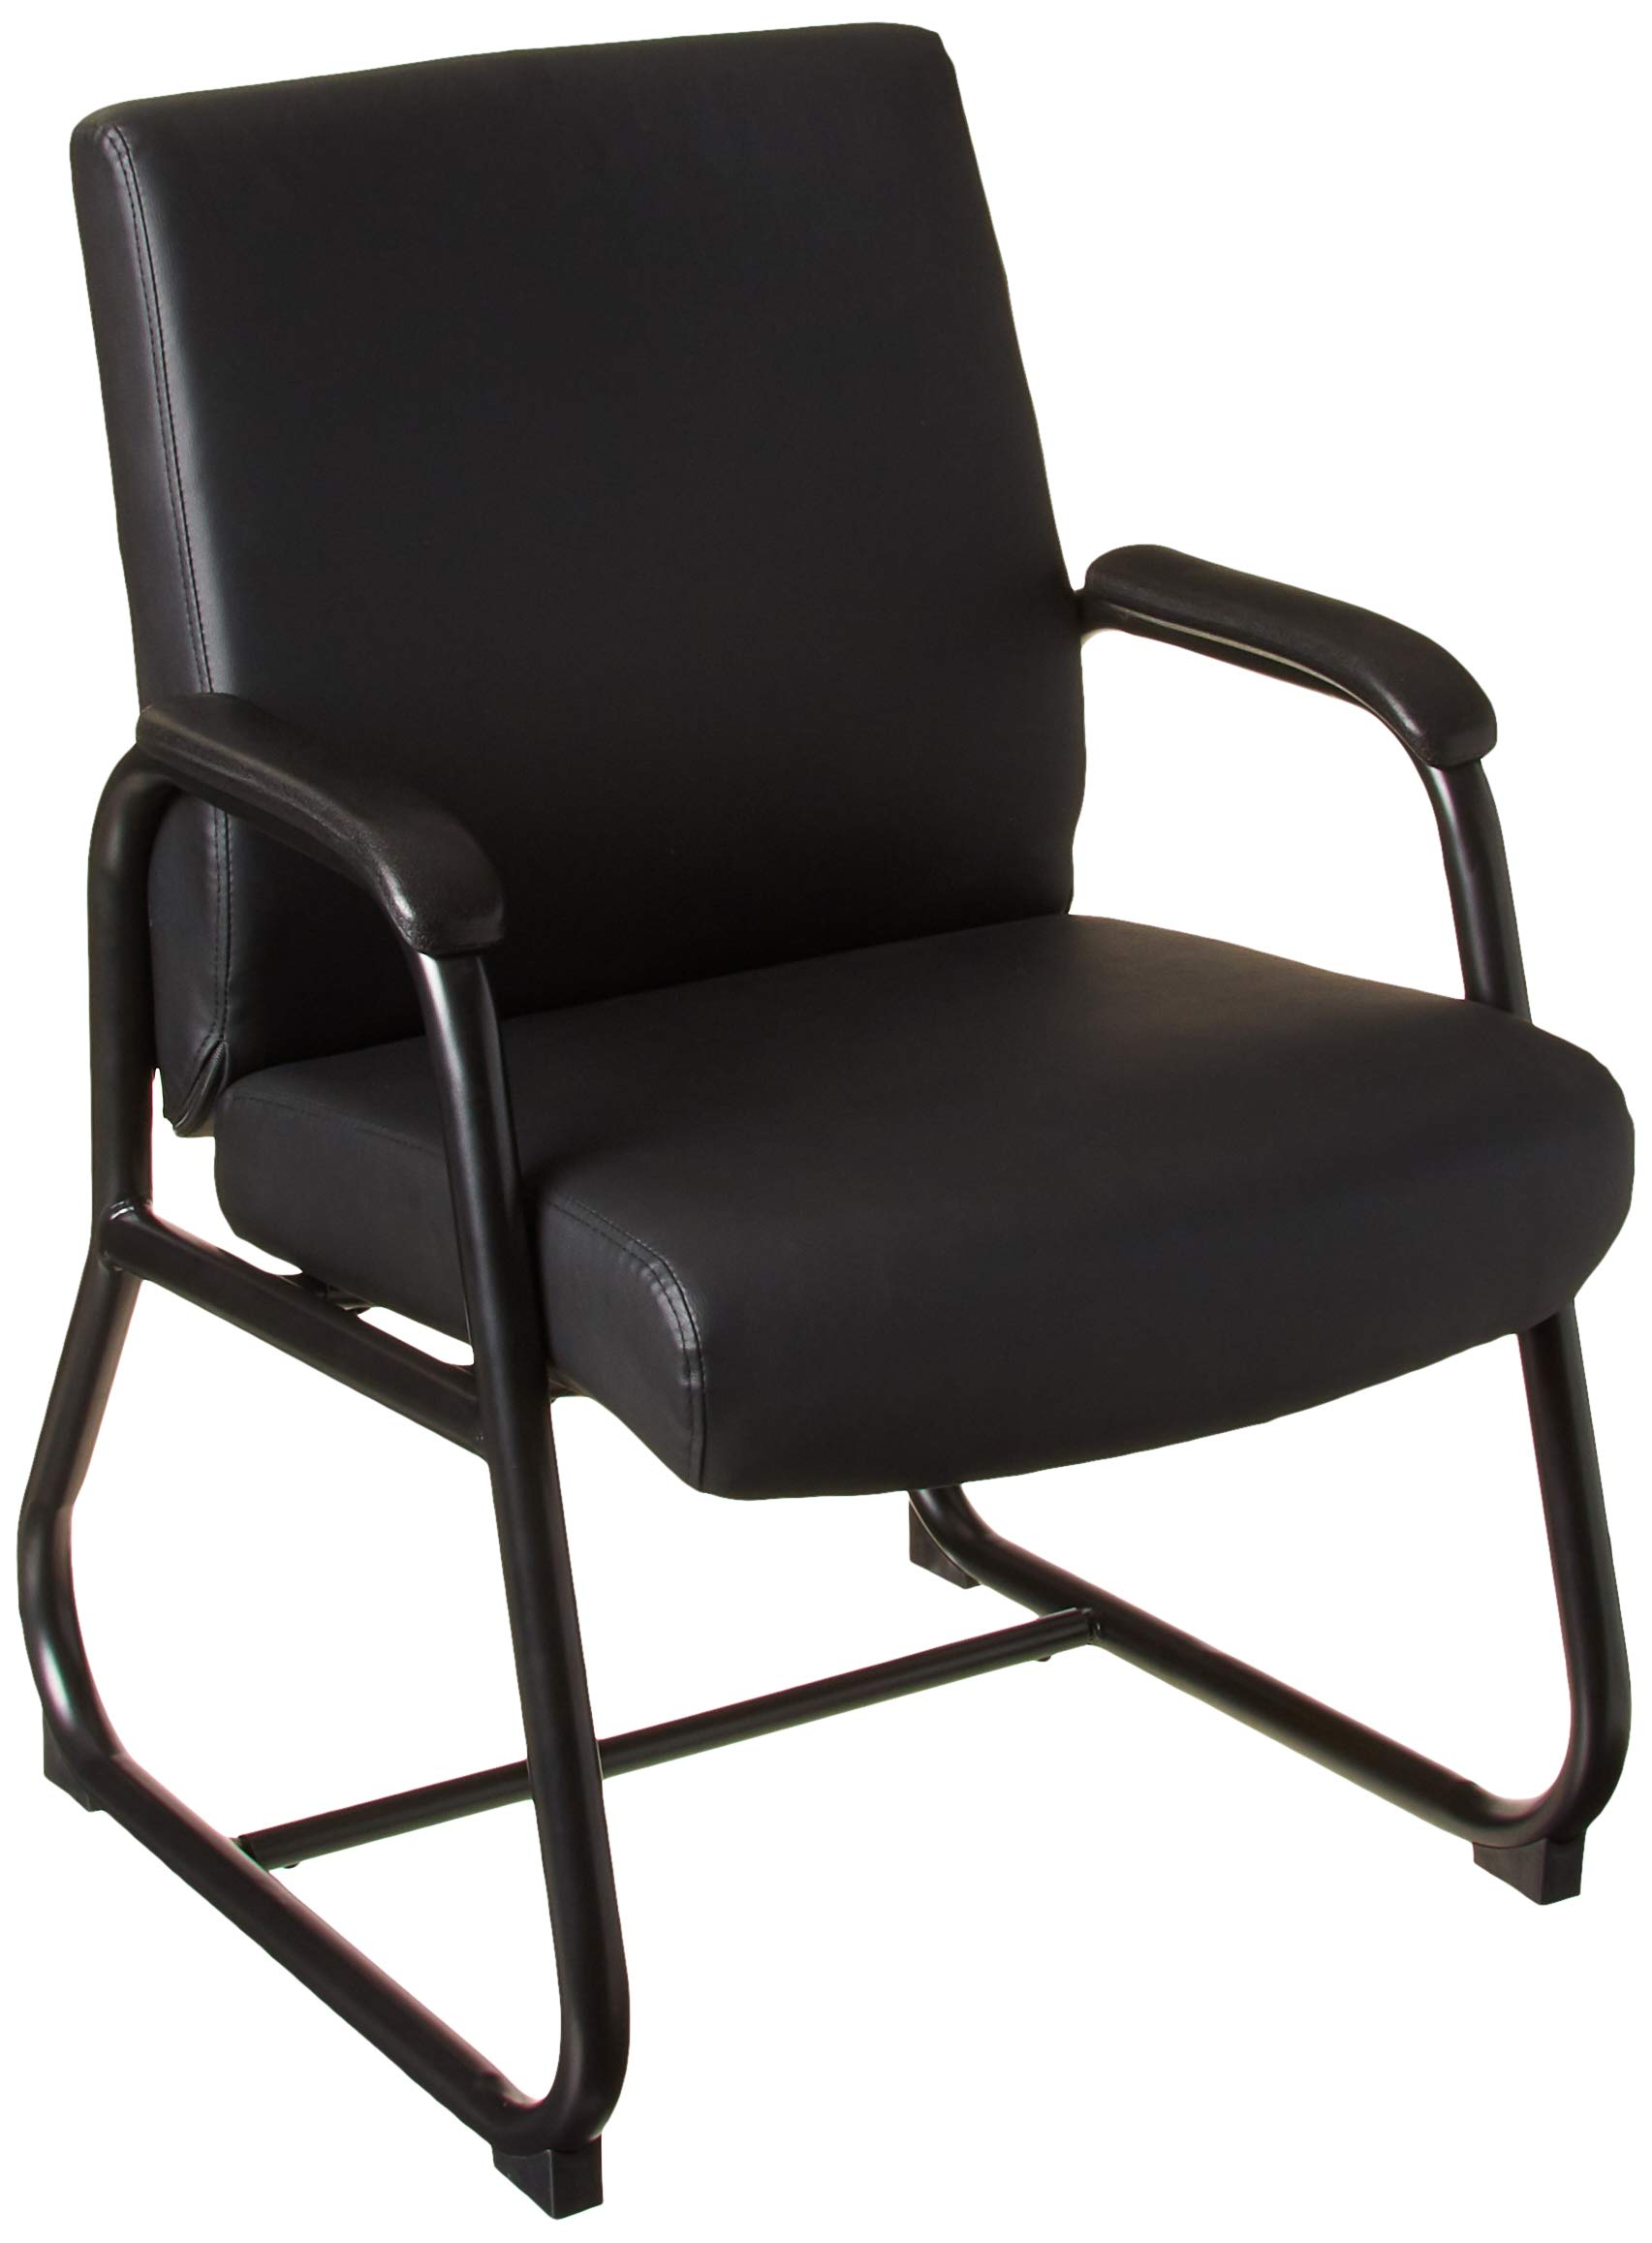 Boss Office Products Heavy Duty Caressoft Guest Chair in Black by Boss Office Products